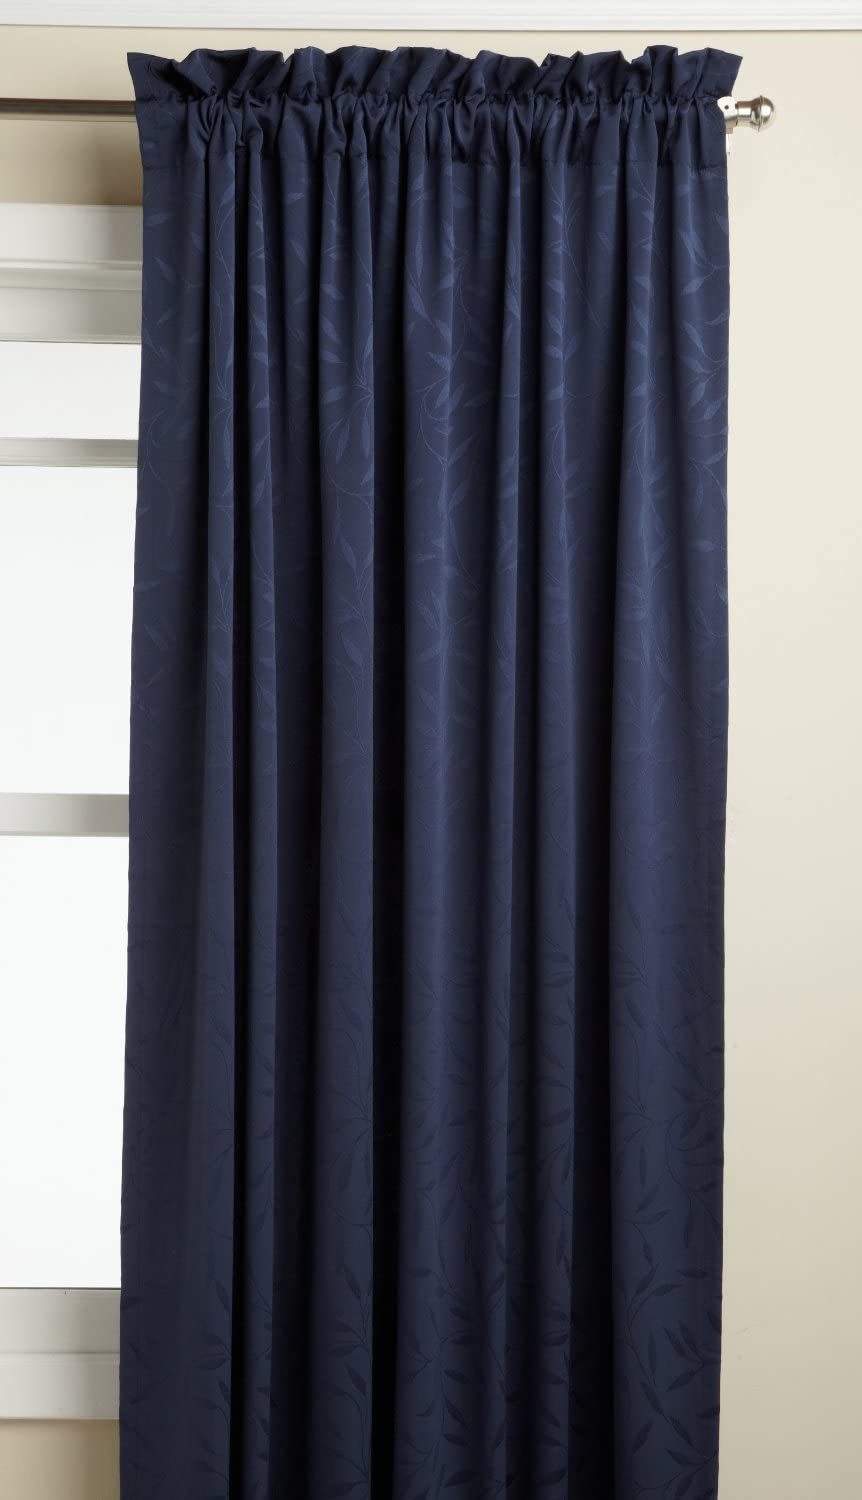 LORRAINE HOME FASHIONS Whitfield 52-inch by 72-inch Window Panel, Navy